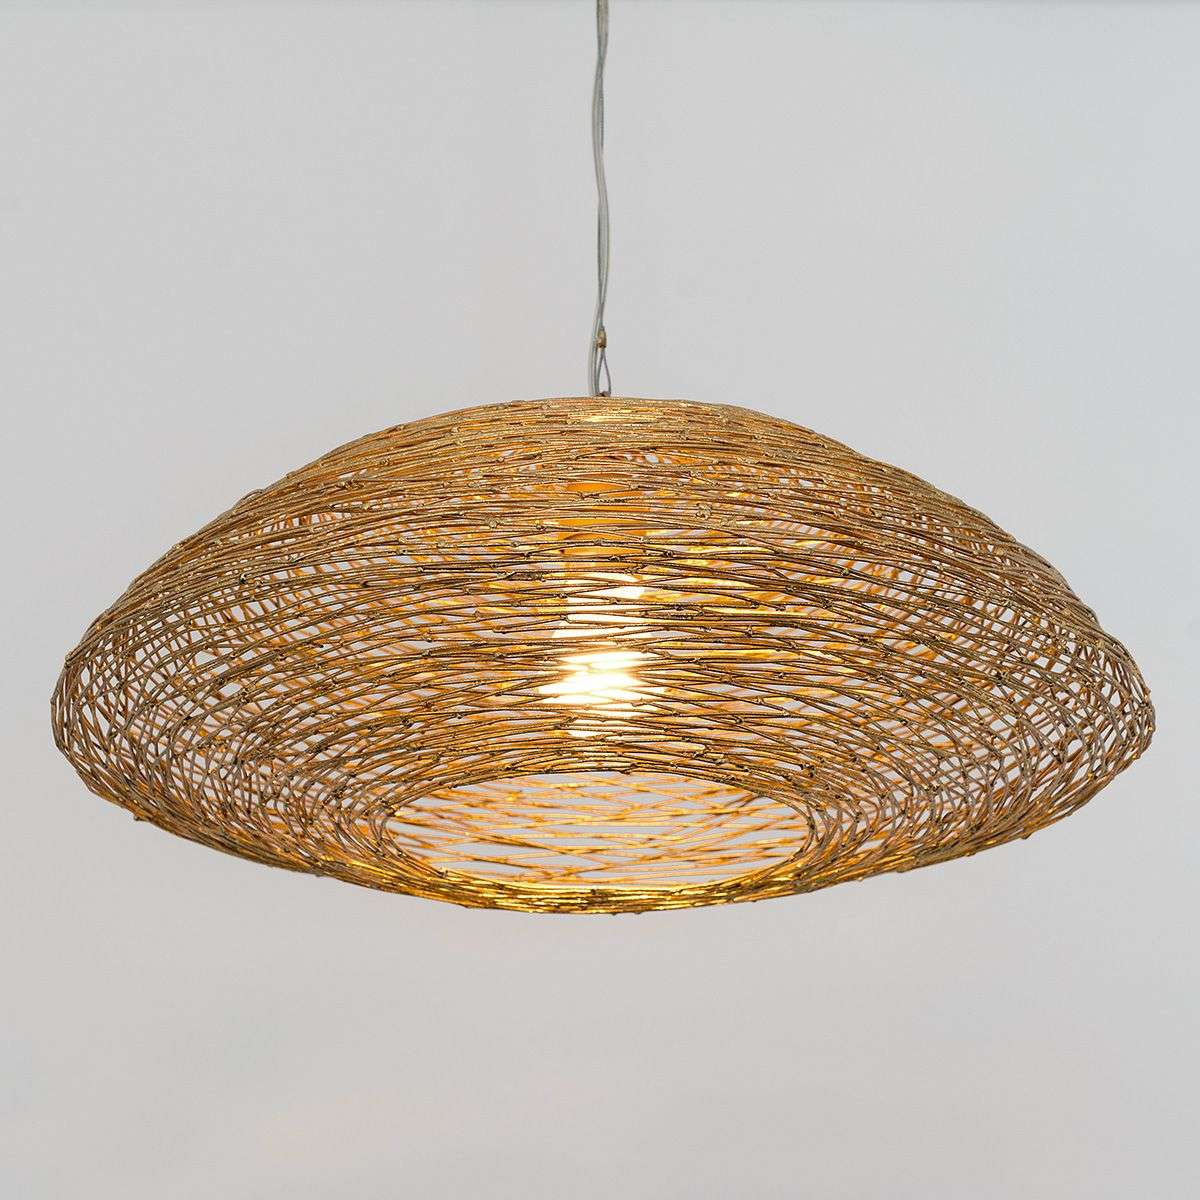 Pendant Light Piseo With A Woven Metal Lampshade Lights